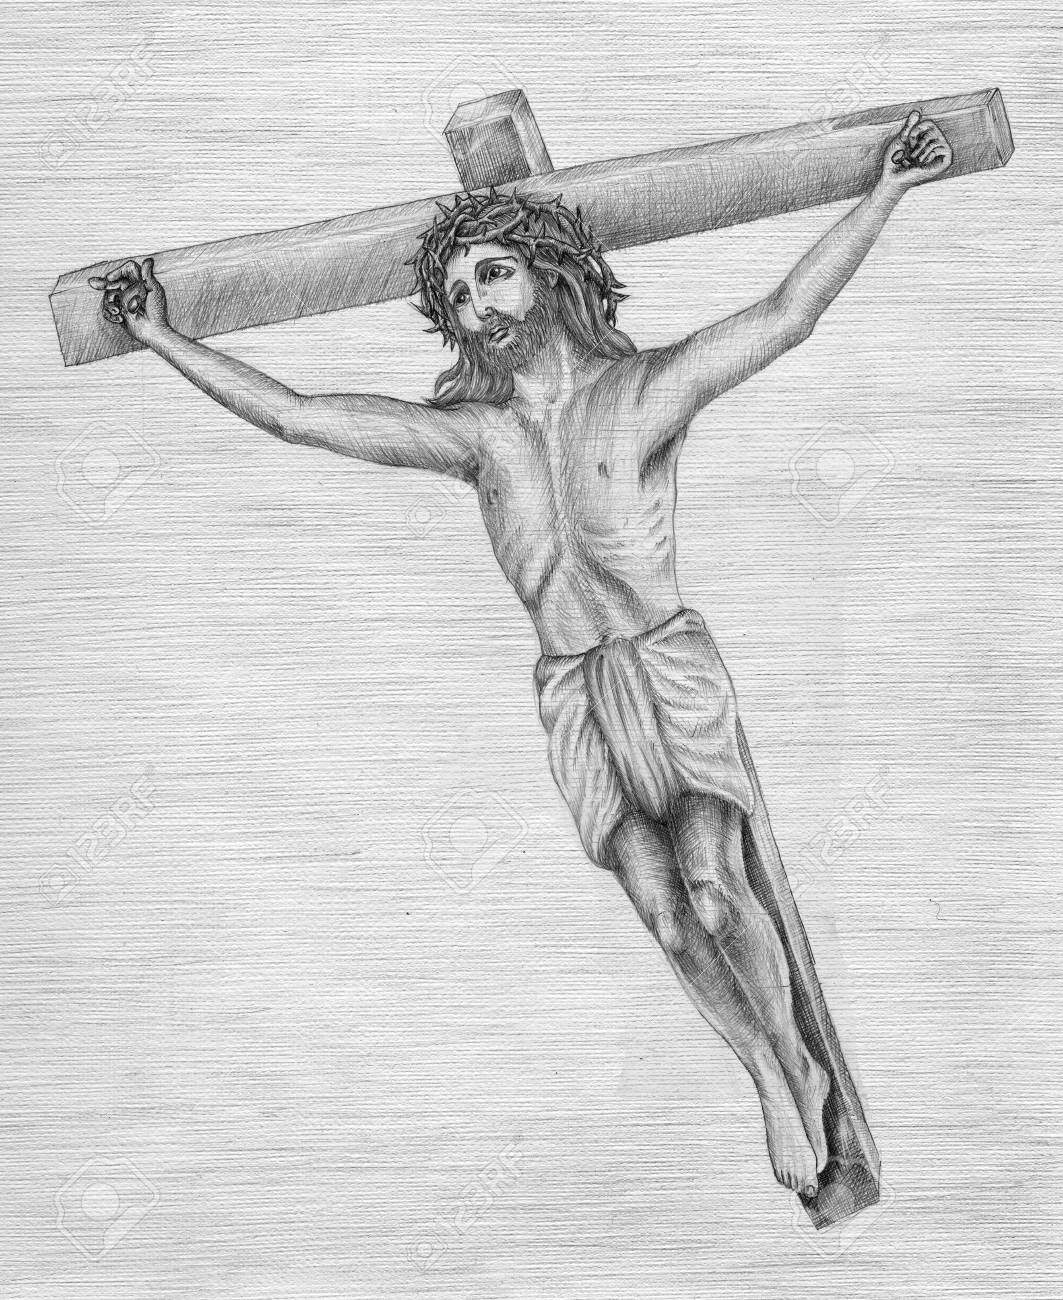 Beautiful pencil drawing of jesus christ for easter stock photo 79781116